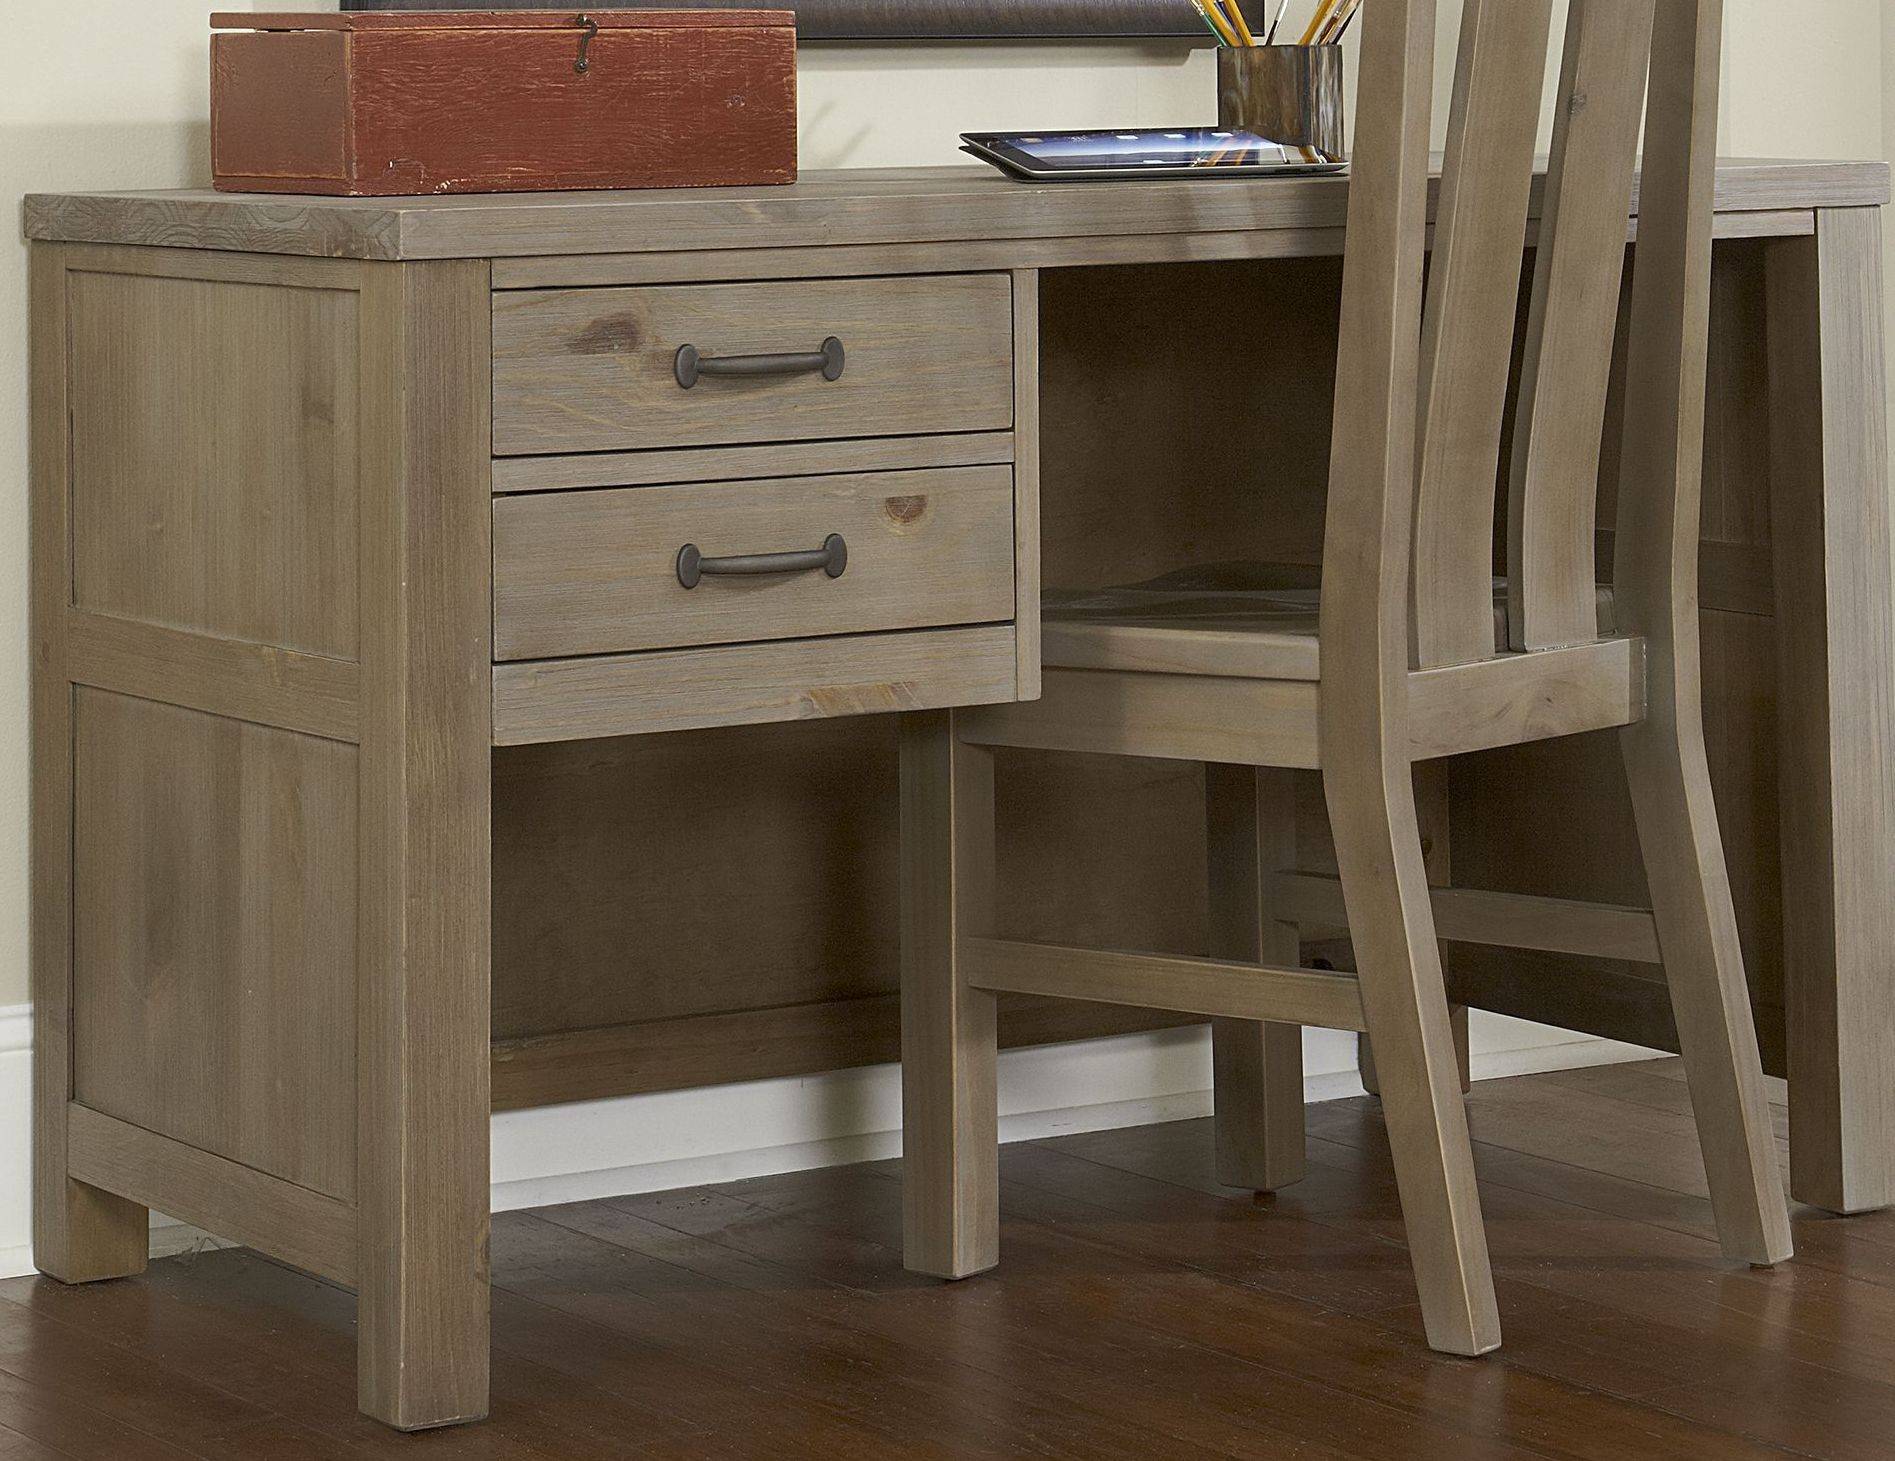 Highlands Driftwood Desk from NE Kids Coleman Furniture